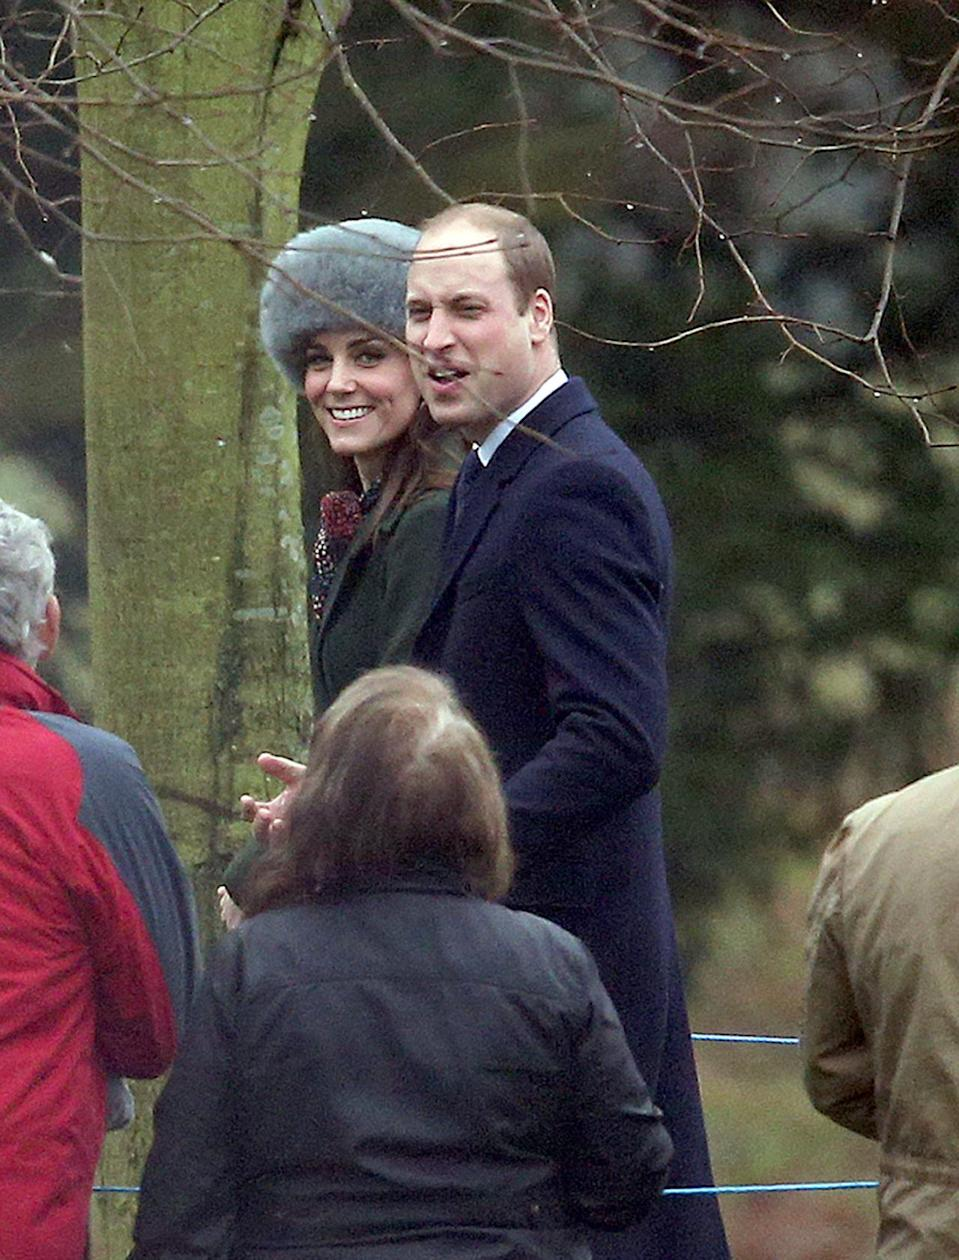 <p>Kate chose a much-favoured dark green coat by Sportmax for a church service at Sandringham. The coat was first seen on the Duchess on Christmas Day in 2015. This year, she paired the look with a printed scarf from L.K. Bennett and a furry grey hat. </p><p><i>[Photo: PA]</i></p>